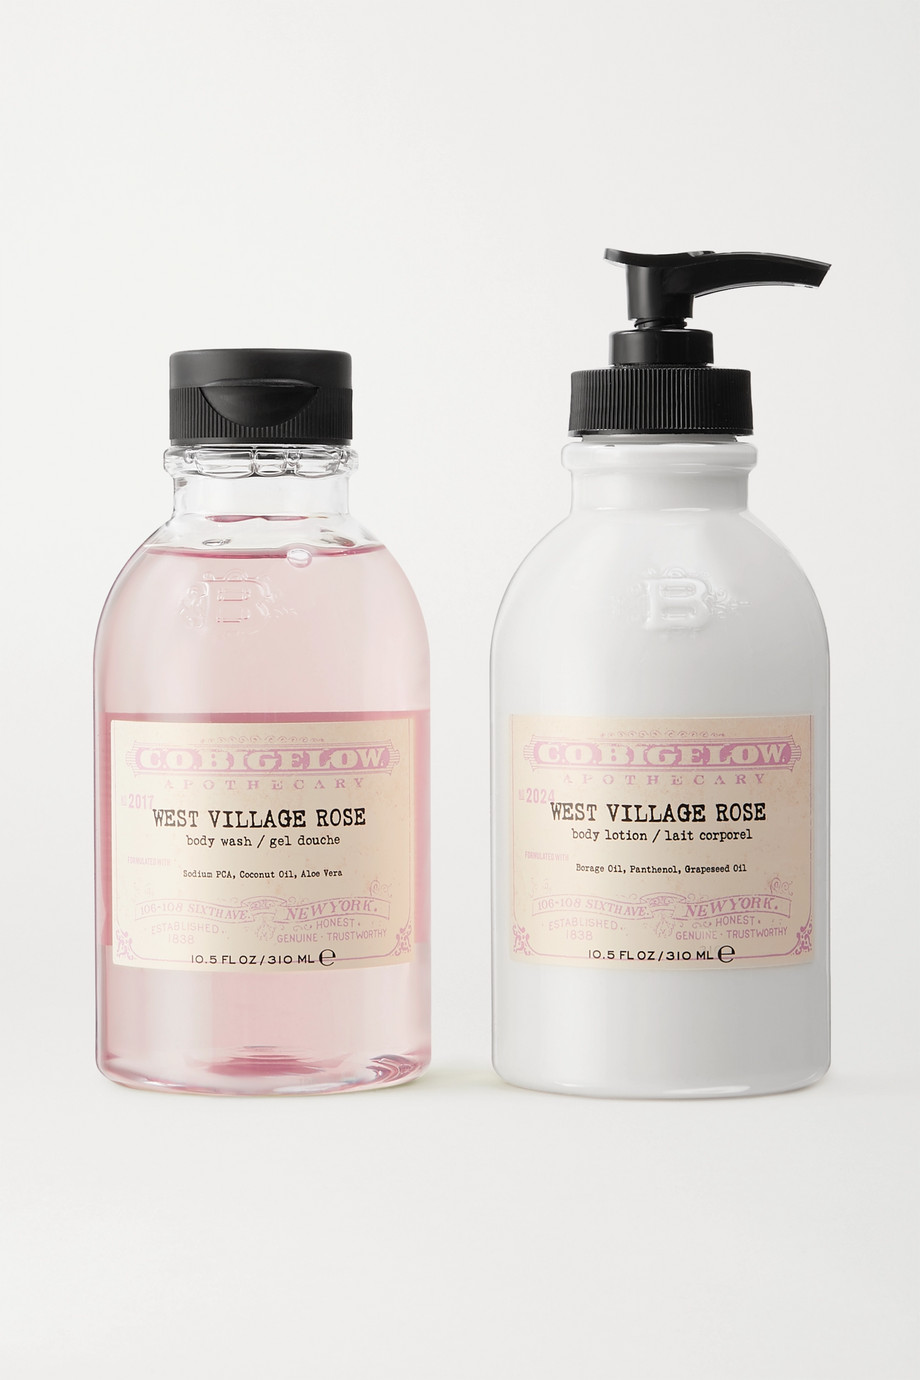 C.O. Bigelow Gel douche et lait corporel Iconic Collection, West Village Rose